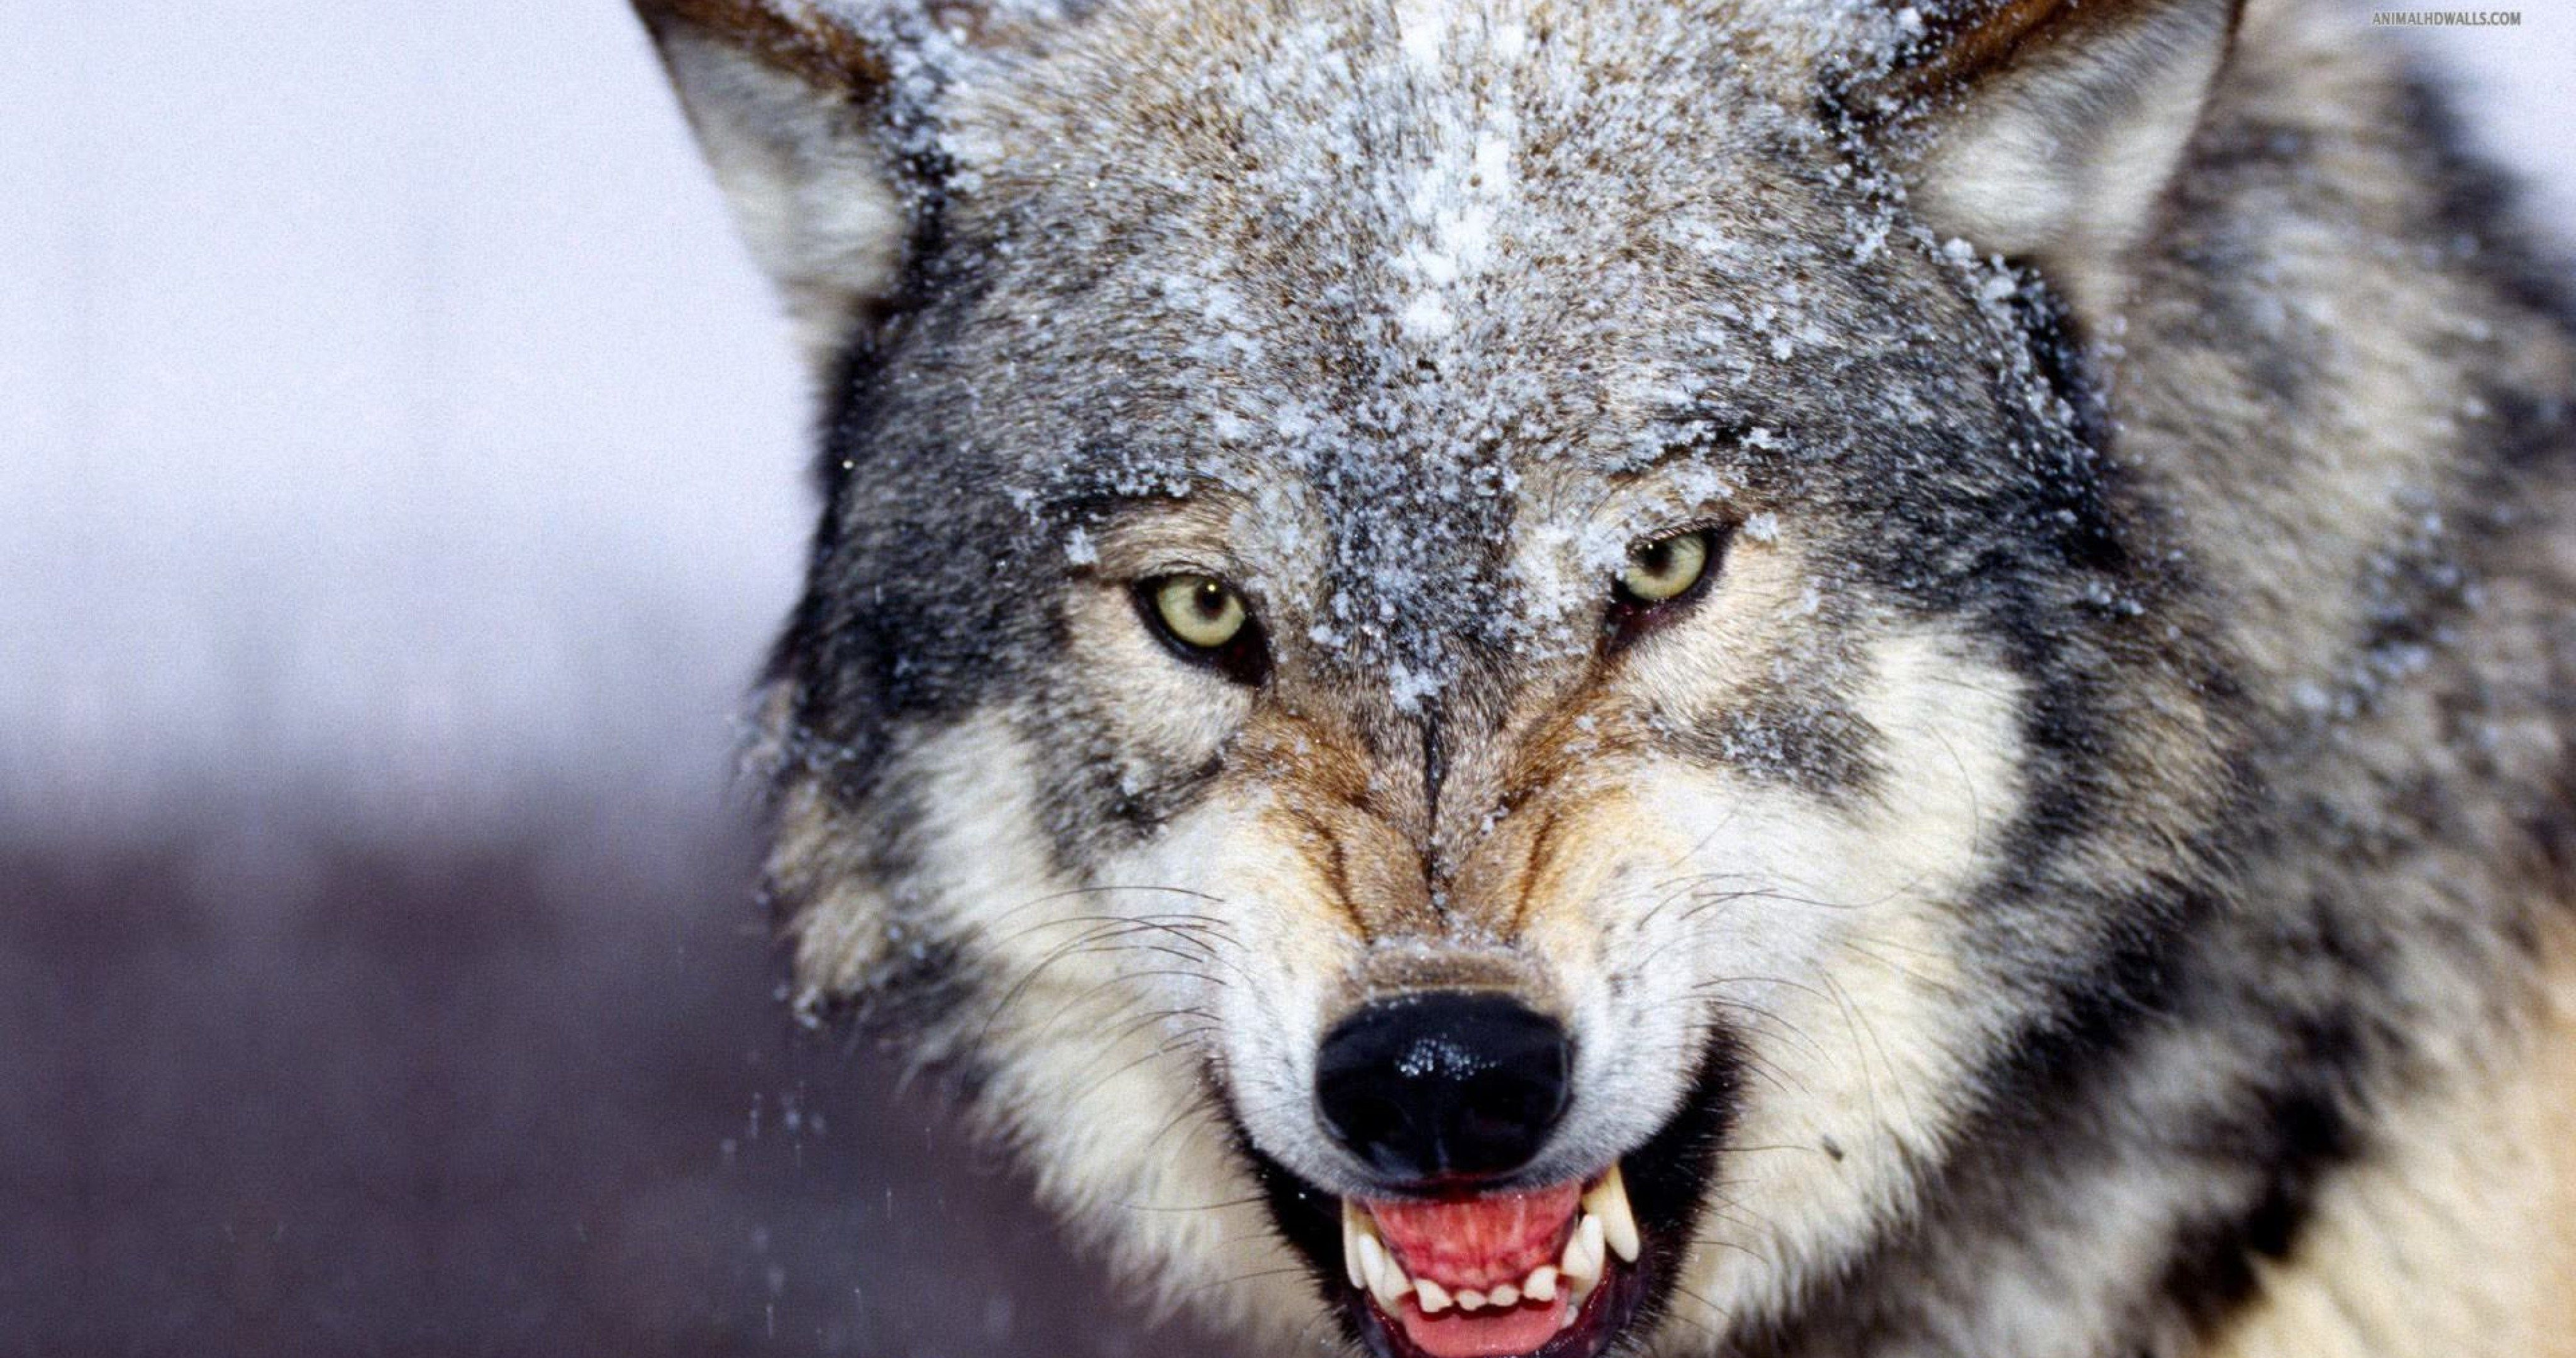 Angry Wolf Wallpaper Hd 4k Ultra Hd Wallpaper Wild Animals Attack Angry Wolf Animal Attack